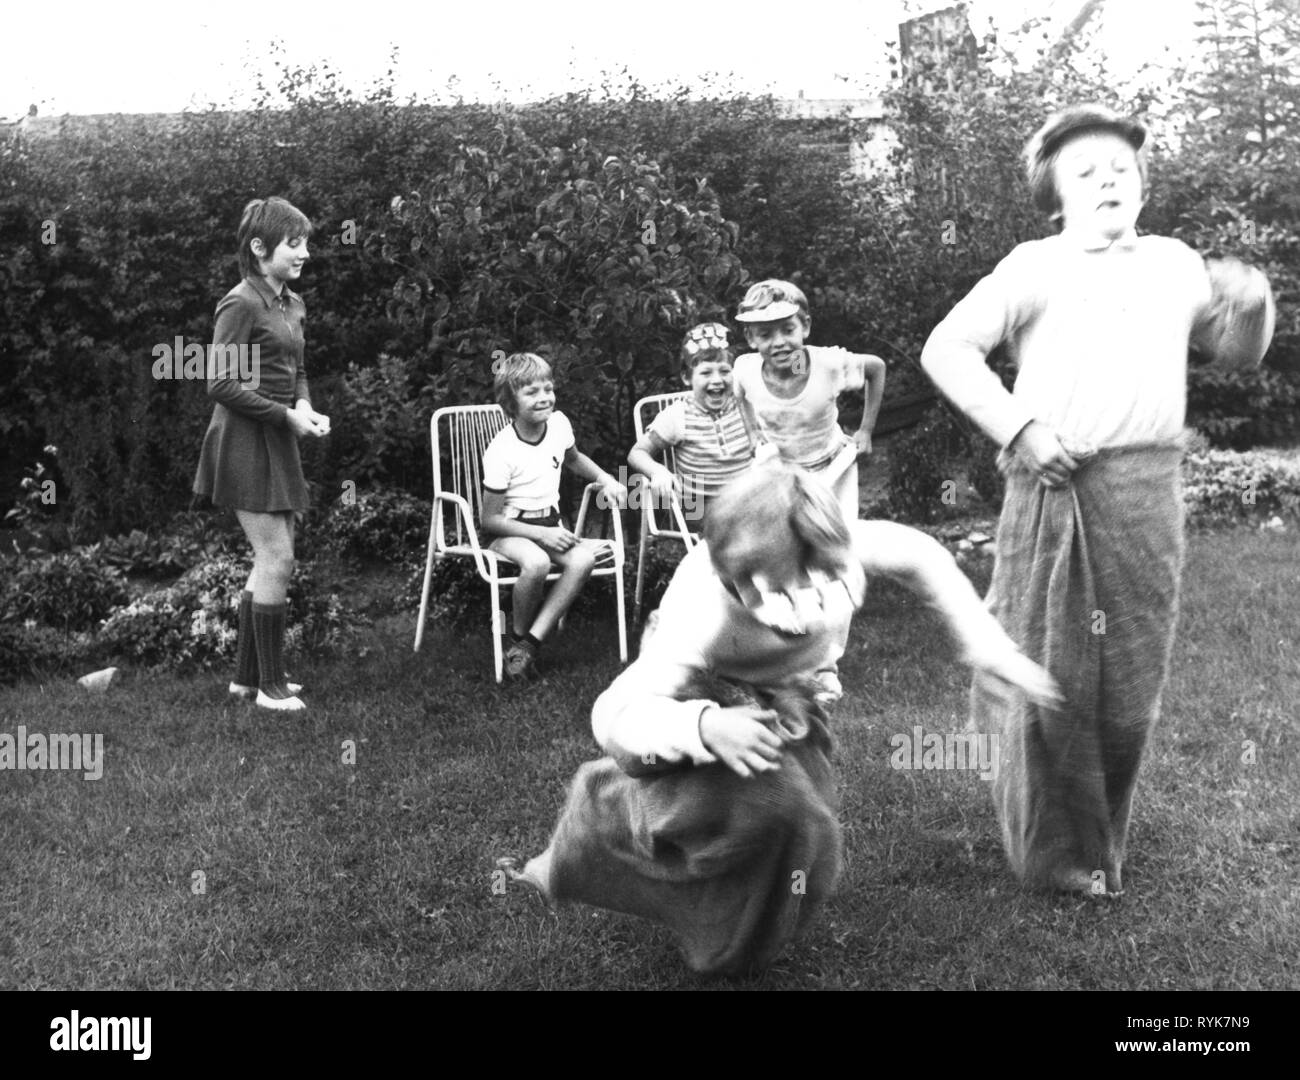 people, children, playing, group of children at sack race, Germany, 9.9.1972, Additional-Rights-Clearance-Info-Not-Available - Stock Image